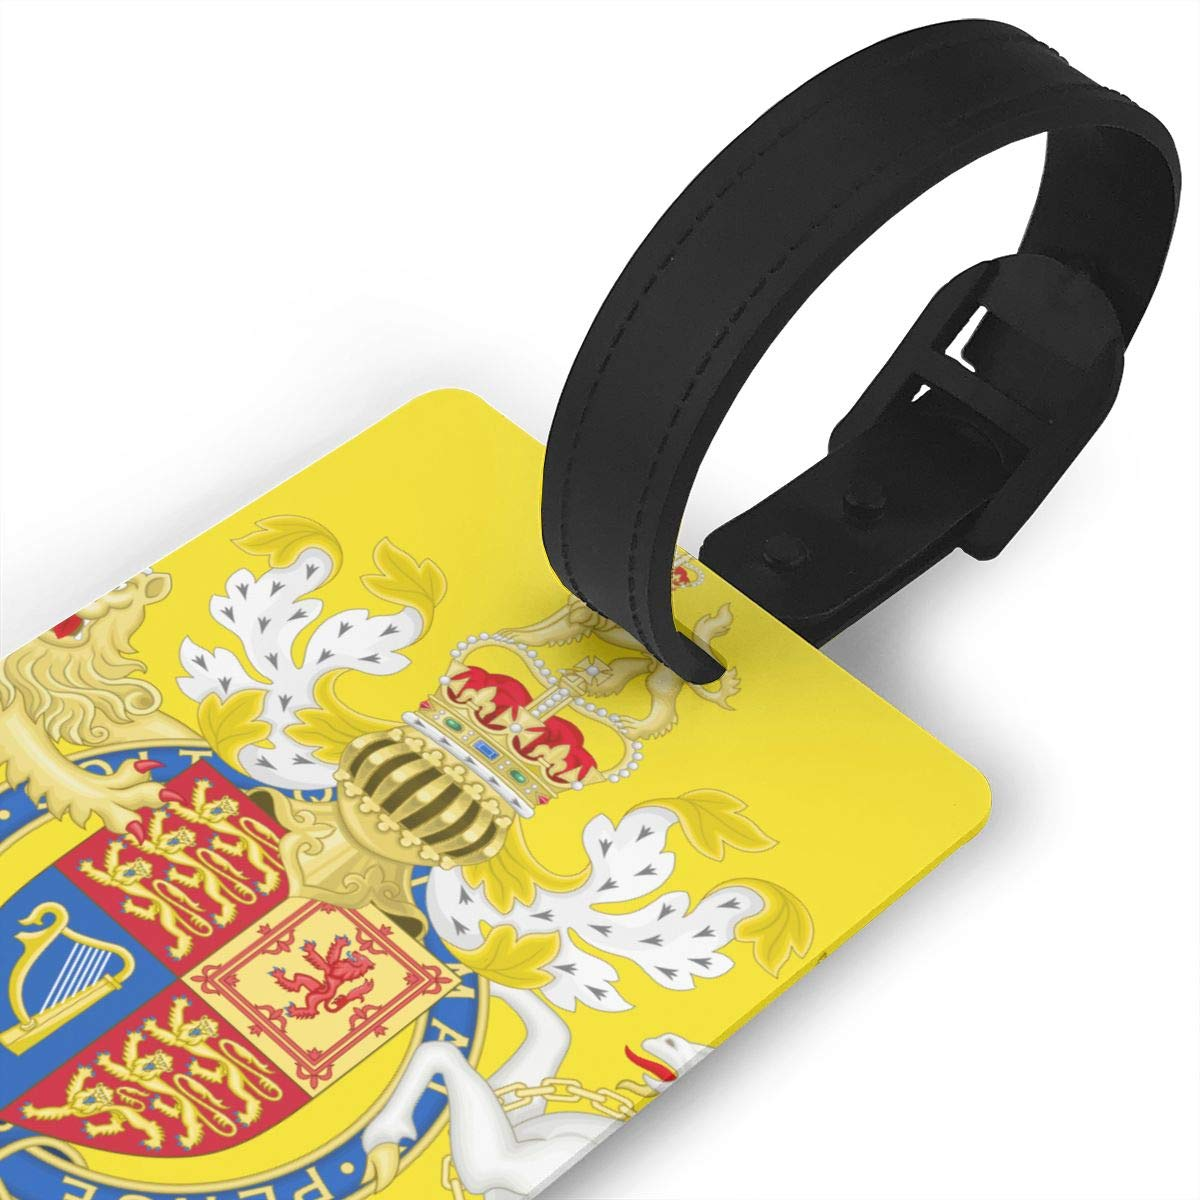 KODW12 Royal Coat of Arms of The United Kingdom Luggage Tag Travel Bag Labels Suitcase Bag Tag Name Address Cards by KODW12 (Image #3)